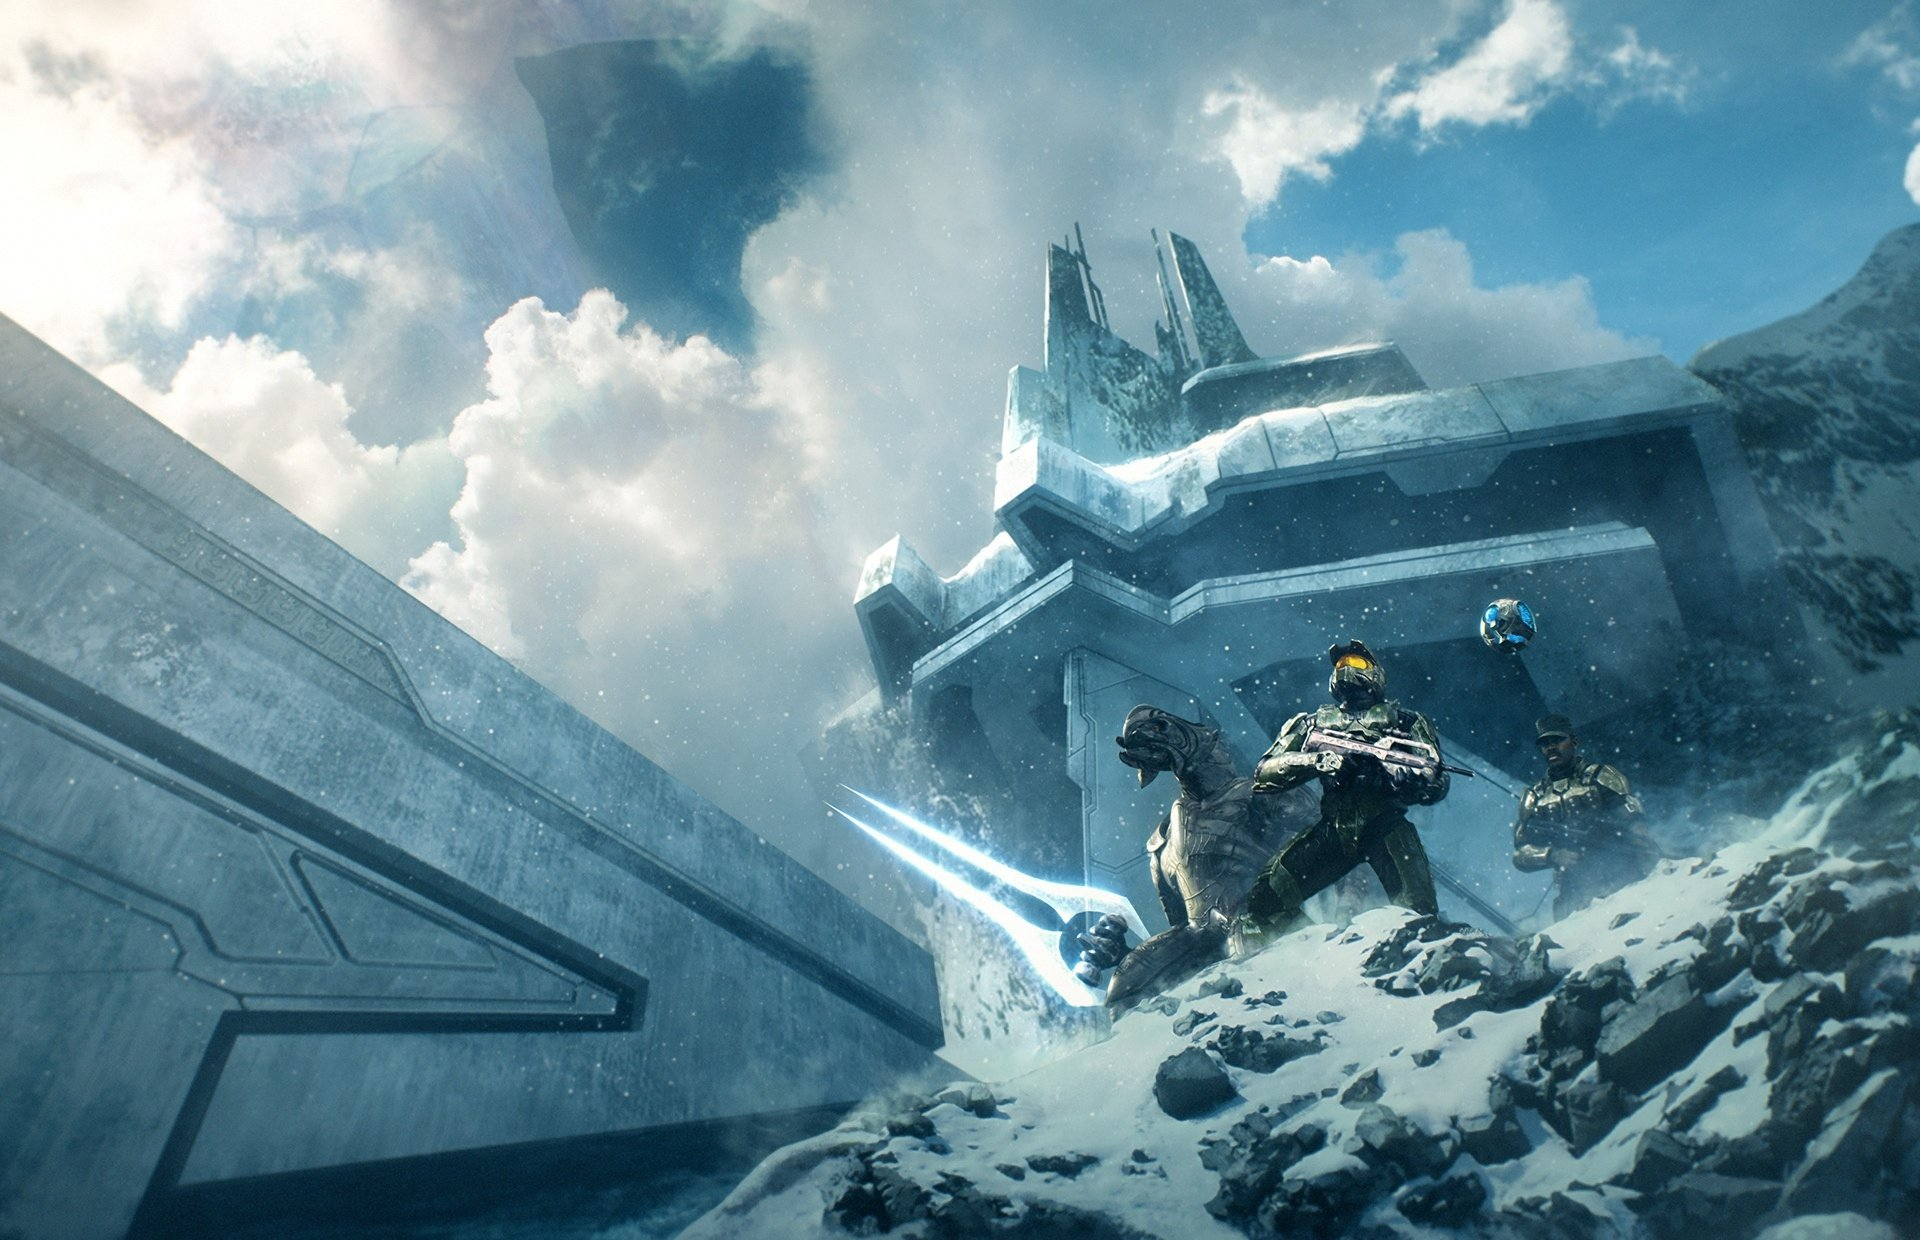 halo 3 hd wallpaper | background image | 1920x1240 | id:822169